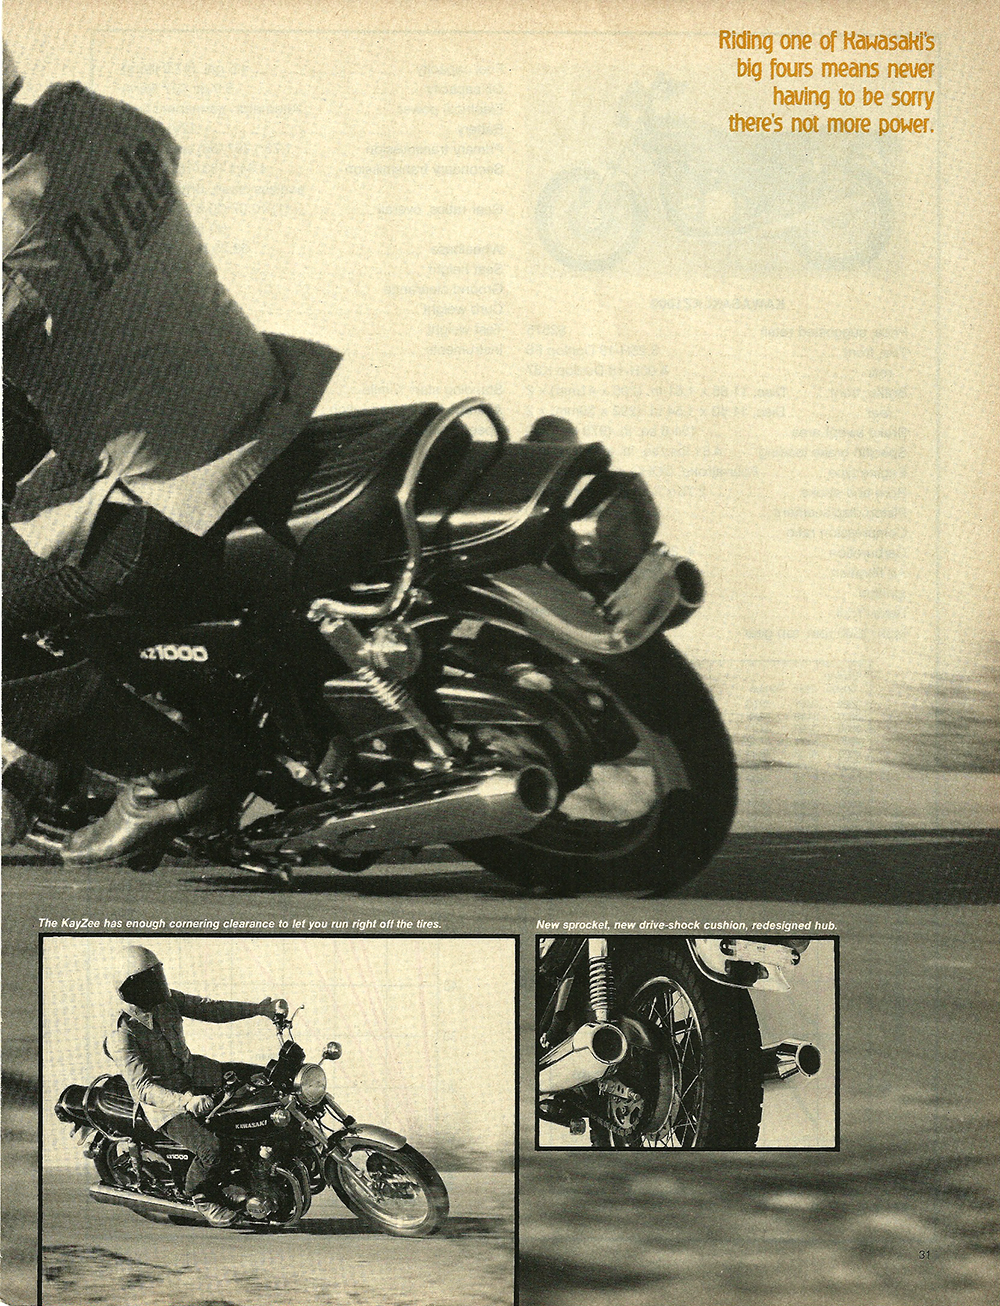 1977 Kawasaki KZ1000 road test 4.jpg